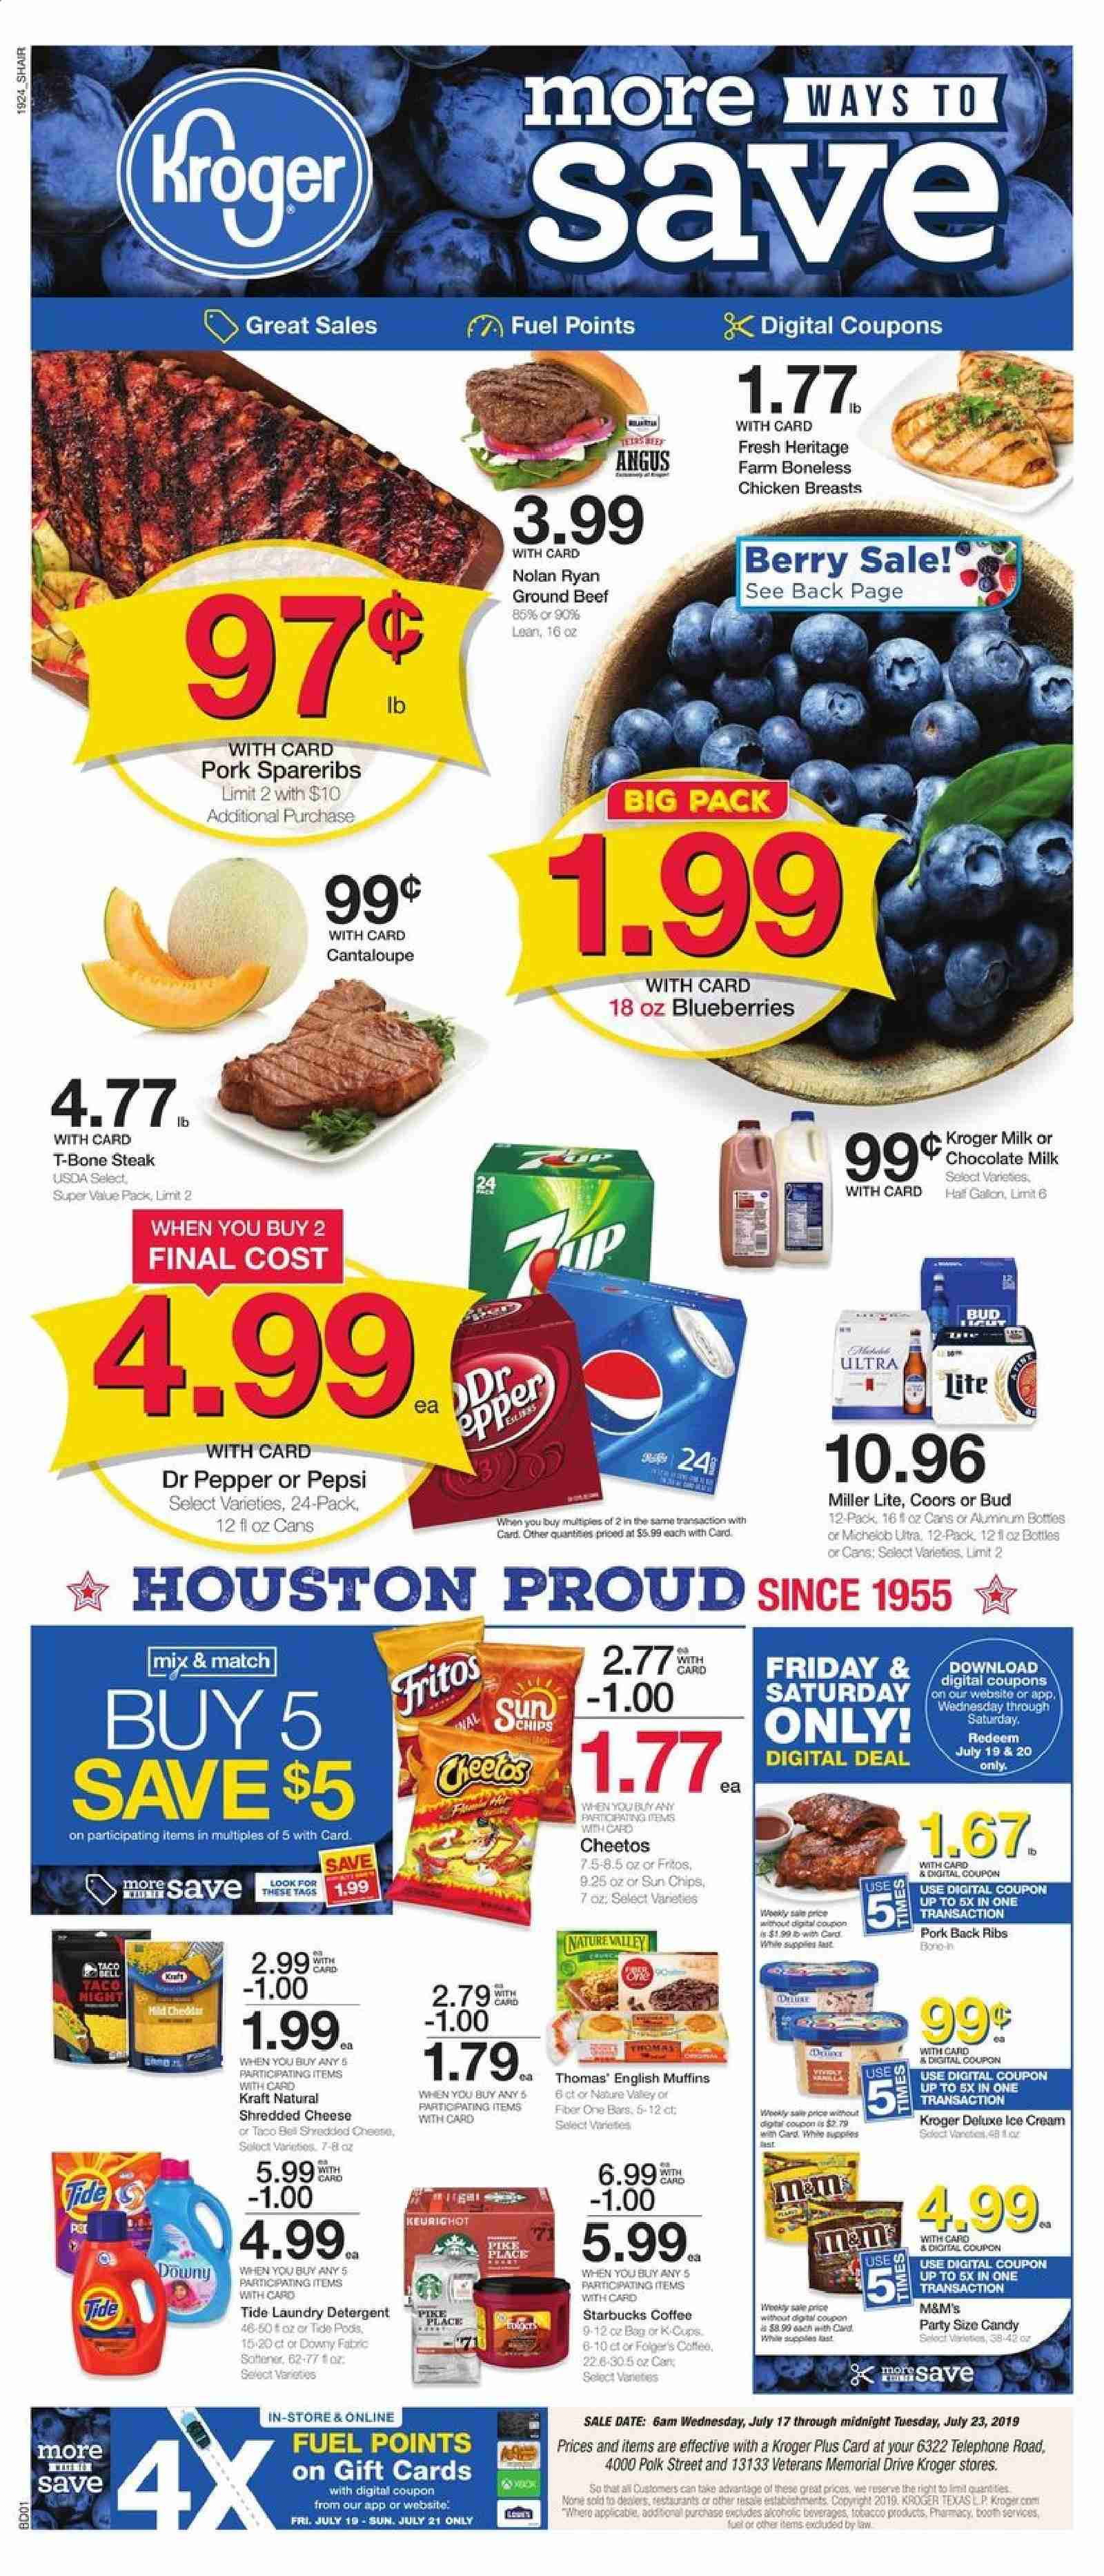 Kroger Flyer - 07.17.2019 - 07.23.2019 - Sales products - Miller Lite, Coors, Michelob, cantaloupe, blueberries, muffin, pike, english muffins, shredded cheese, cheddar, cheese, milk, chocolate milk, candy, M&M's, Cheetos, chips, Fritos, pepper, Pepsi, Dr. Pepper, coffee, chicken, chicken breast, beef meat, t-bone steak, steak, ground beef, pork meat, detergent, Downy, Tide, laundry detergent, fuel, Starbucks, cream. Page 1.